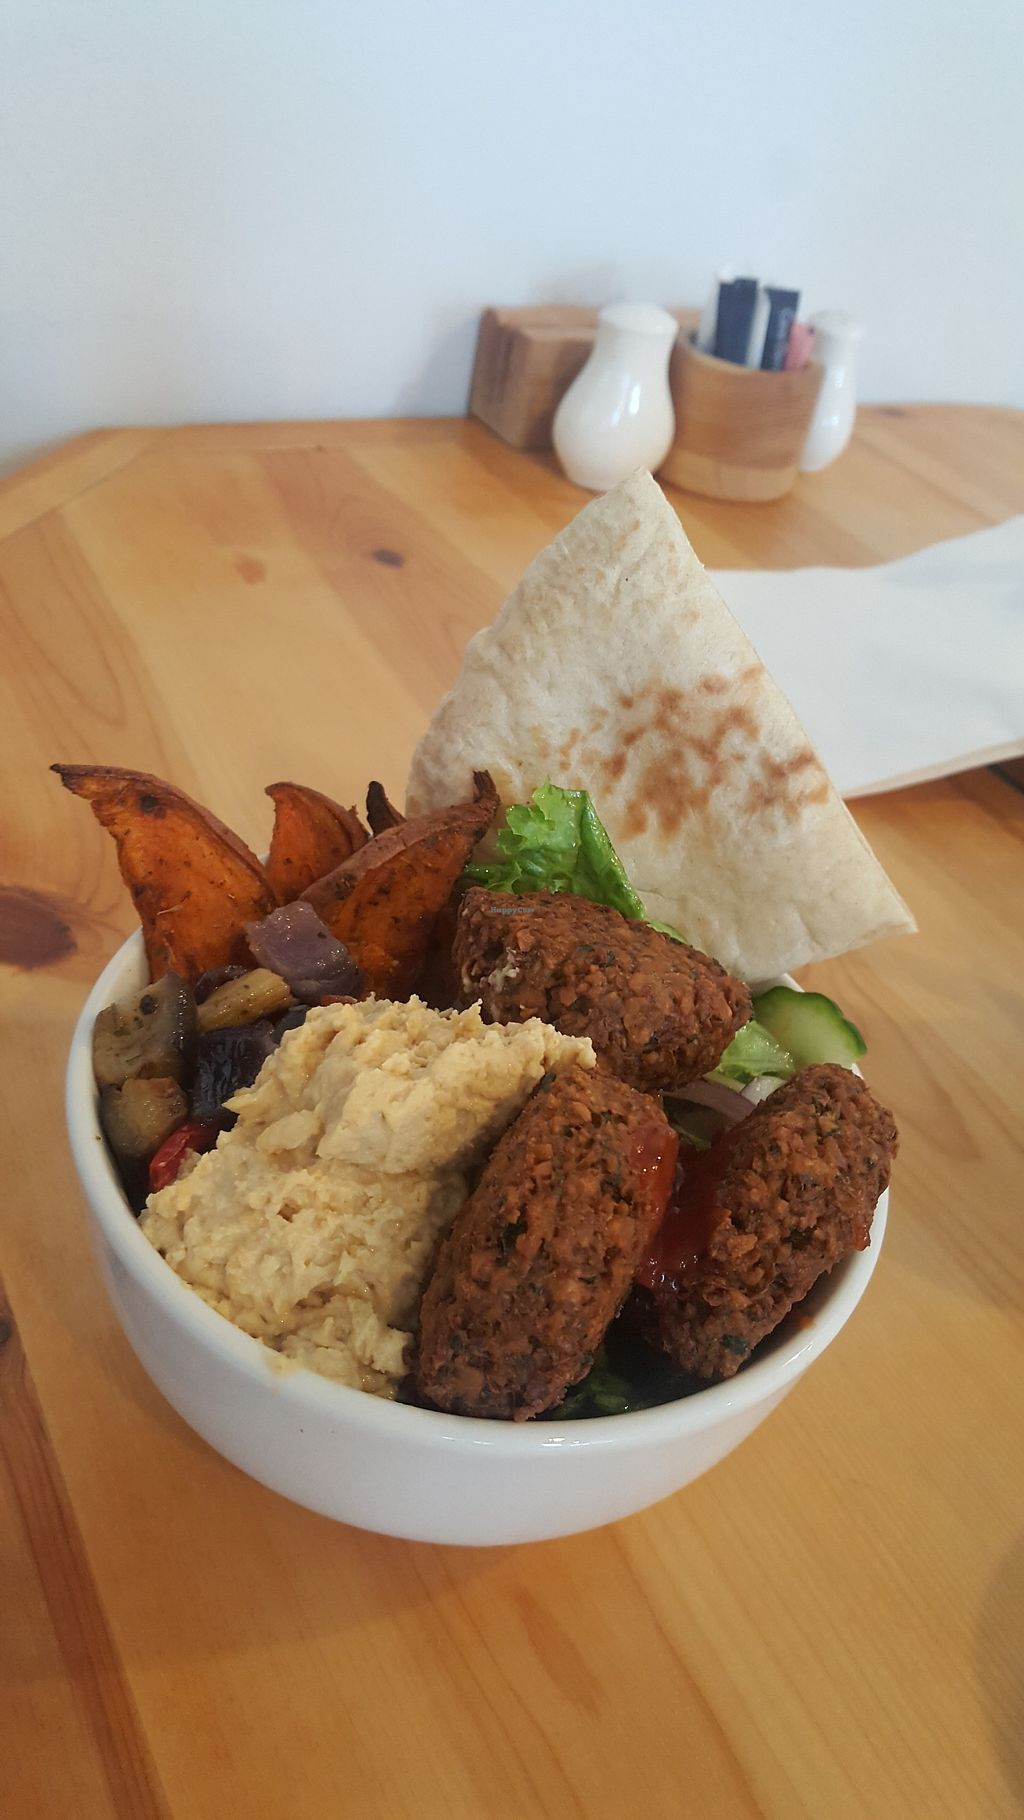 """Photo of The Willow Tree Cafe  by <a href=""""/members/profile/NatalieJayne"""">NatalieJayne</a> <br/>Buddha bowl .. lush  <br/> April 17, 2018  - <a href='/contact/abuse/image/97937/387343'>Report</a>"""